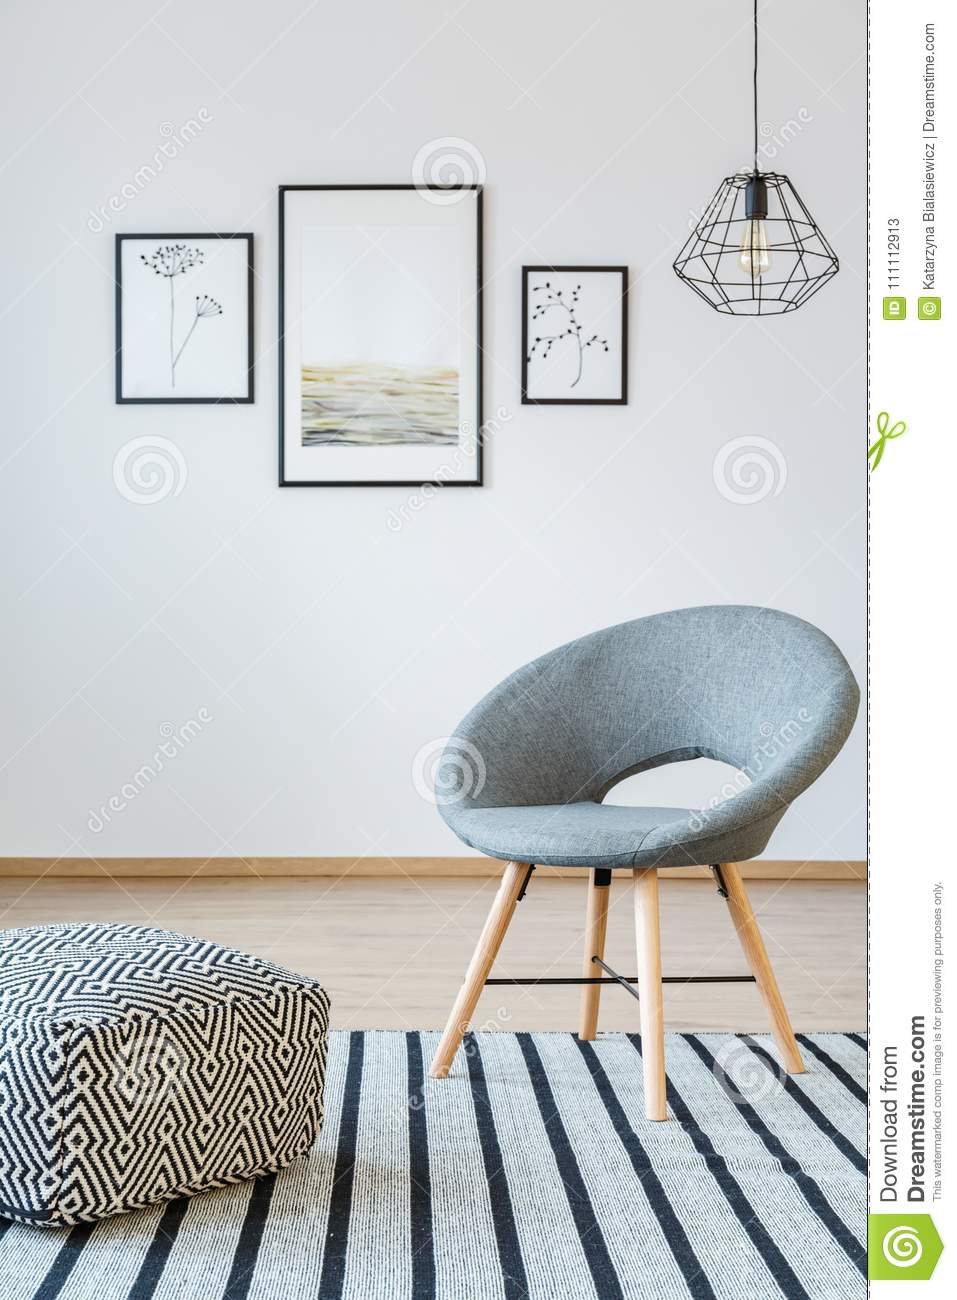 Grey Living Room With Posters Stock Image - Image of gallery, metal ...